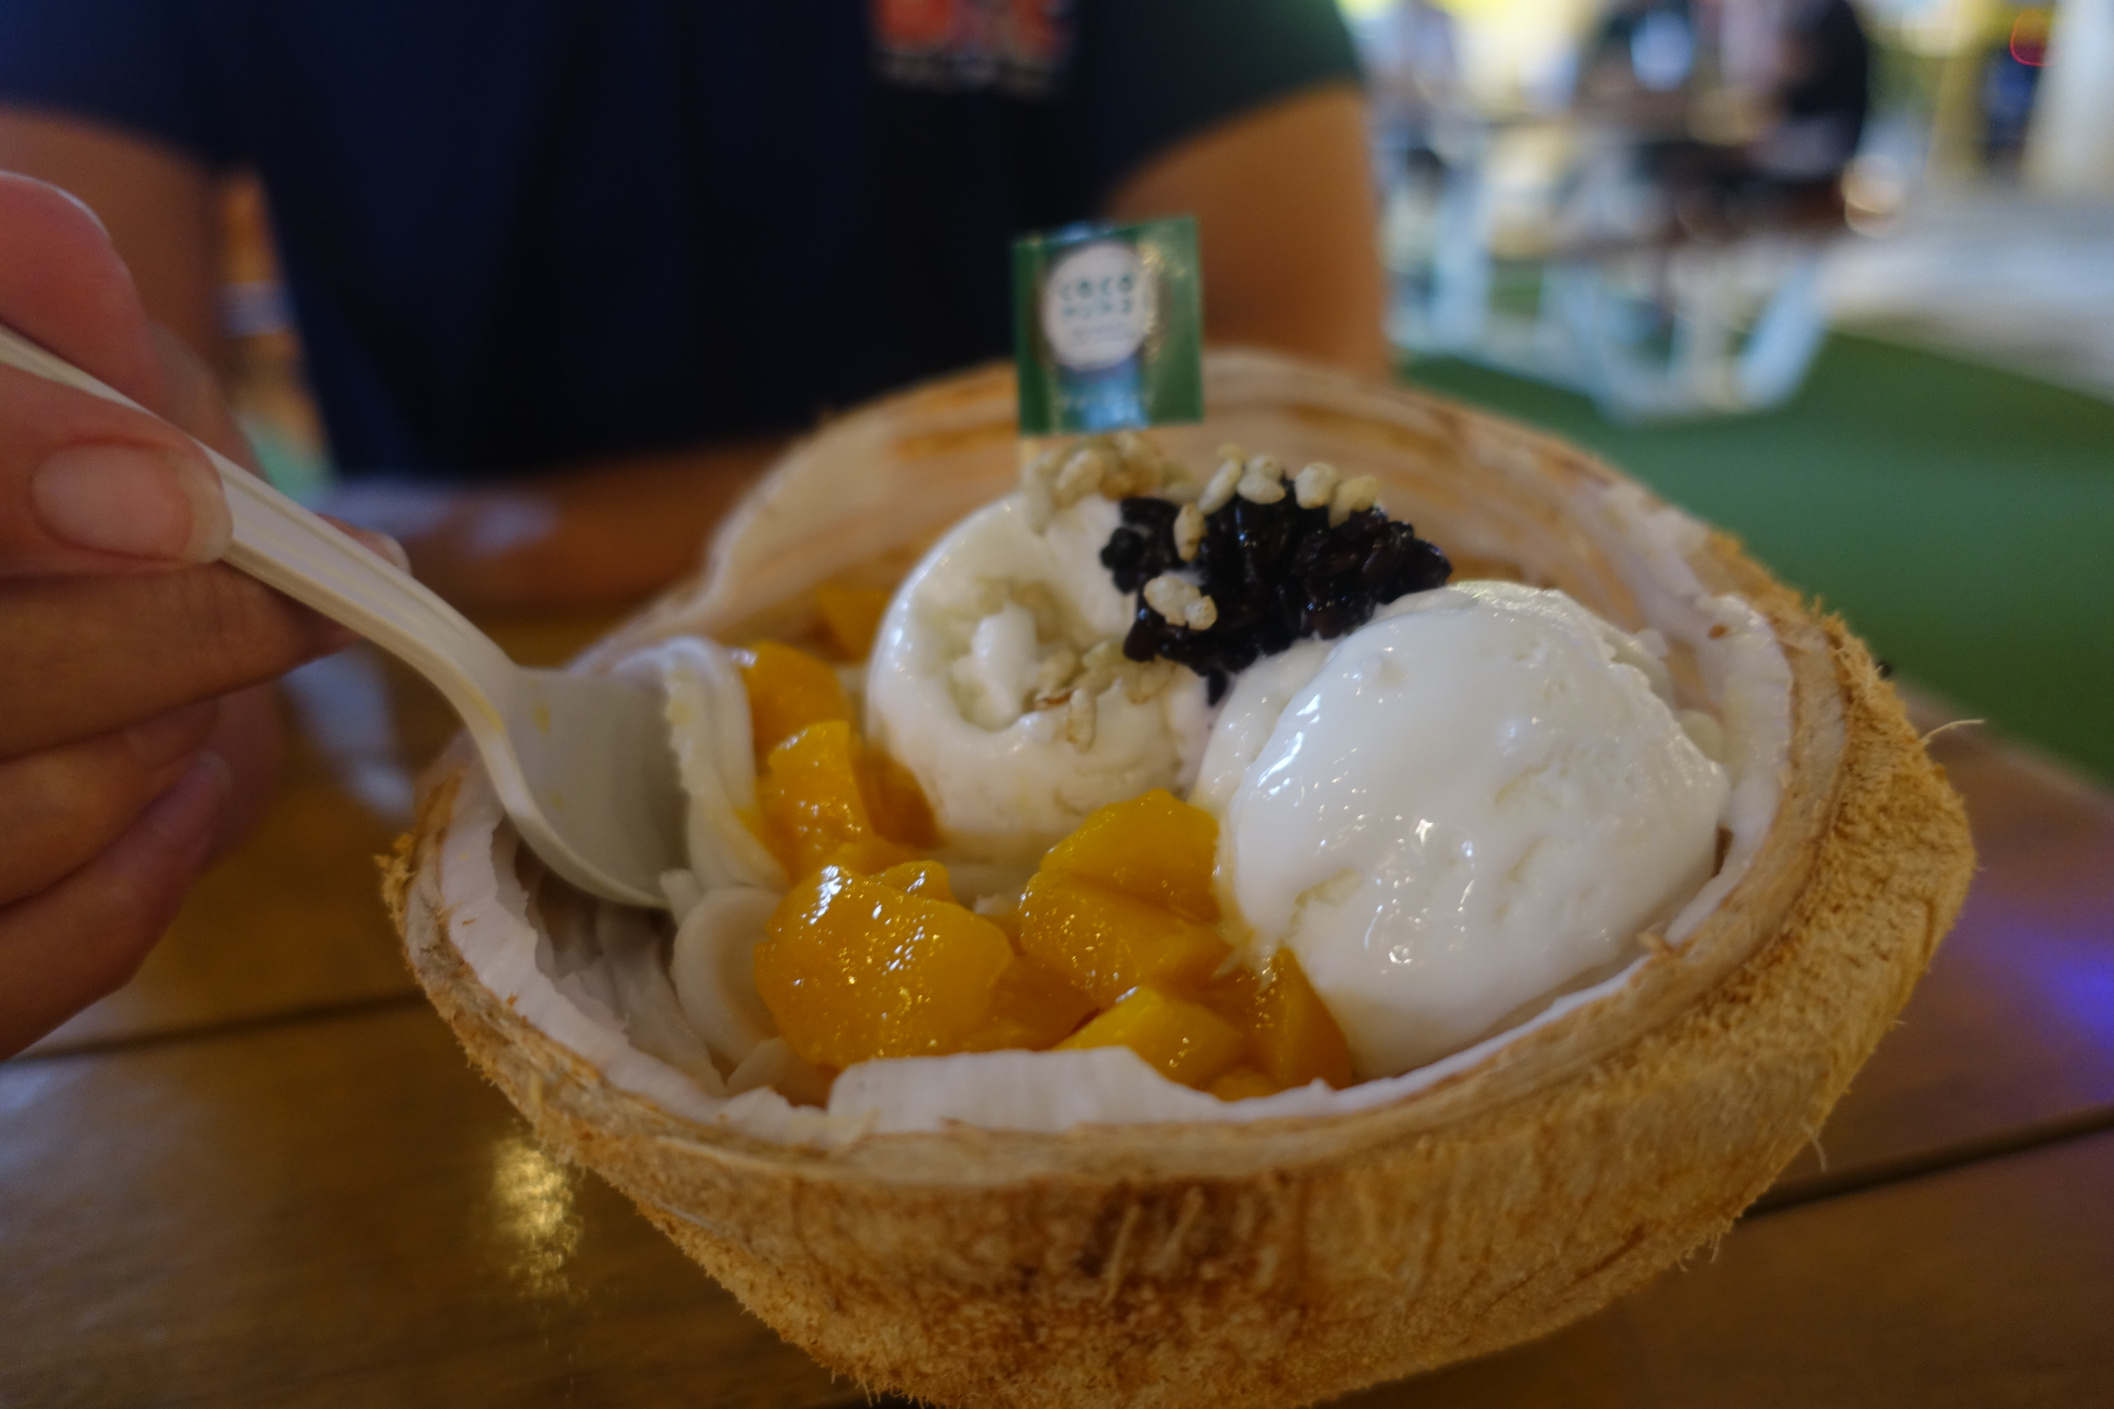 Our favourite treat; fresh jel-like coconut flesh, scrapped off the shell, topped with mango, coconut ice-cream and black sesame seeds. We queued for one hour to get one on our last day!